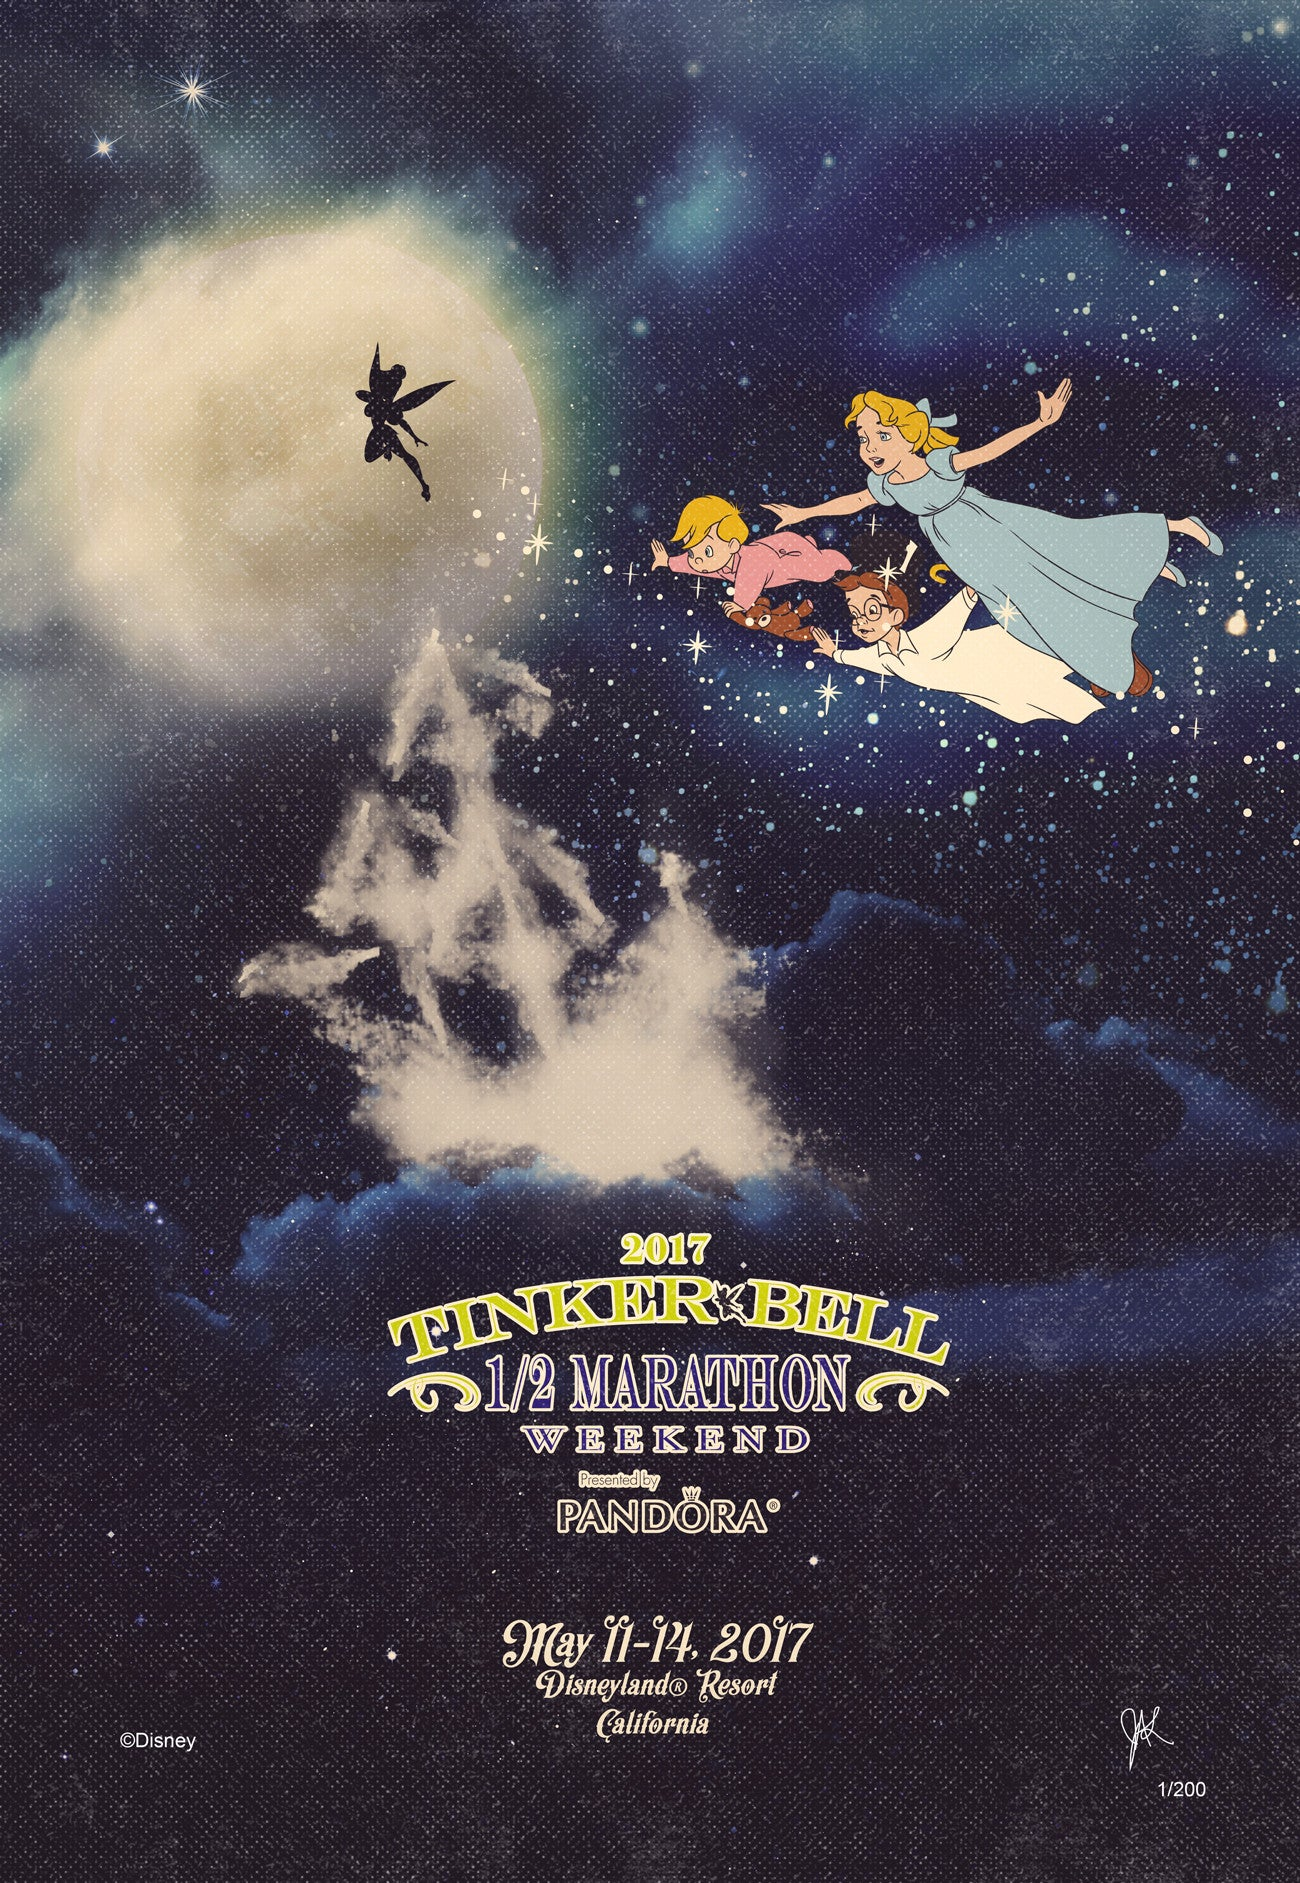 2017 Tinker Bell Half Marathon Weekend Print (Limited Edition)